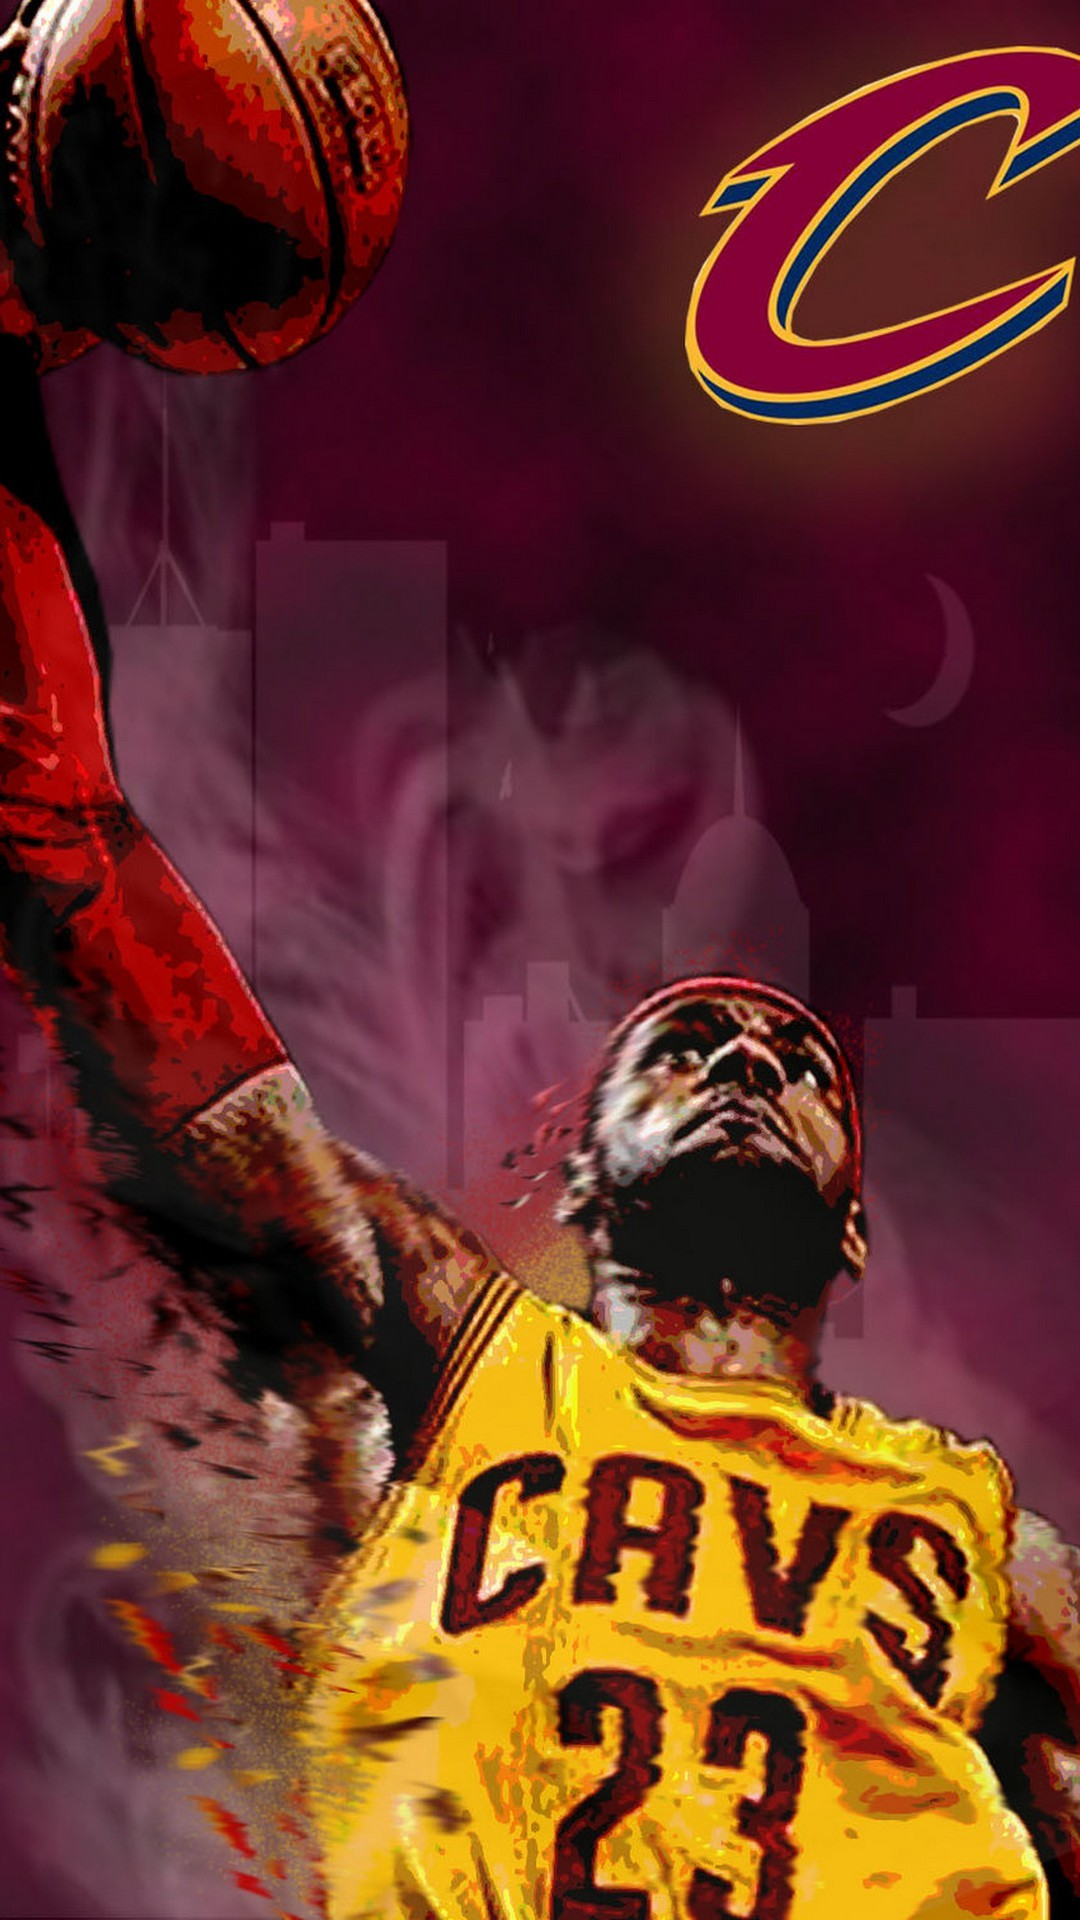 1080x1920 Photo :: Lebron James cleveland cavaliers wallpaper. Top Photos of the  First Round vs. Indiana | Cleveland Cavaliers